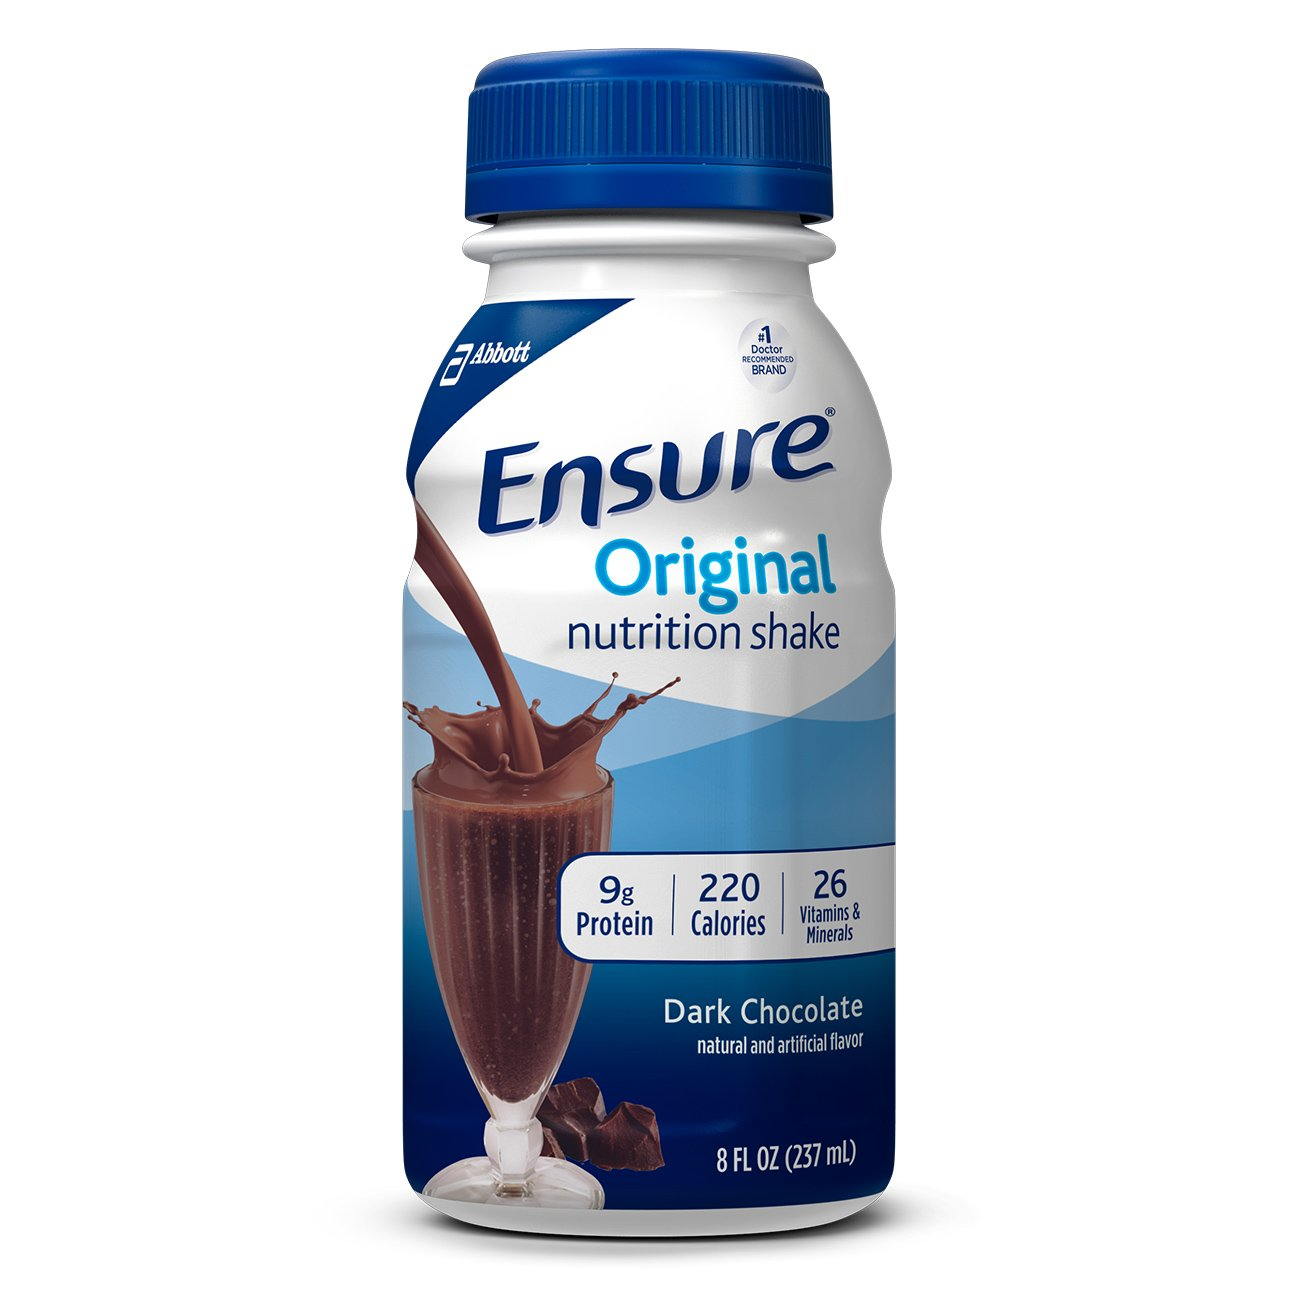 Ensure Original Nutrition Shake with 9 grams of protein, Meal Replacement Shakes, Dark Chocolate, 8 fl oz (24 Count)